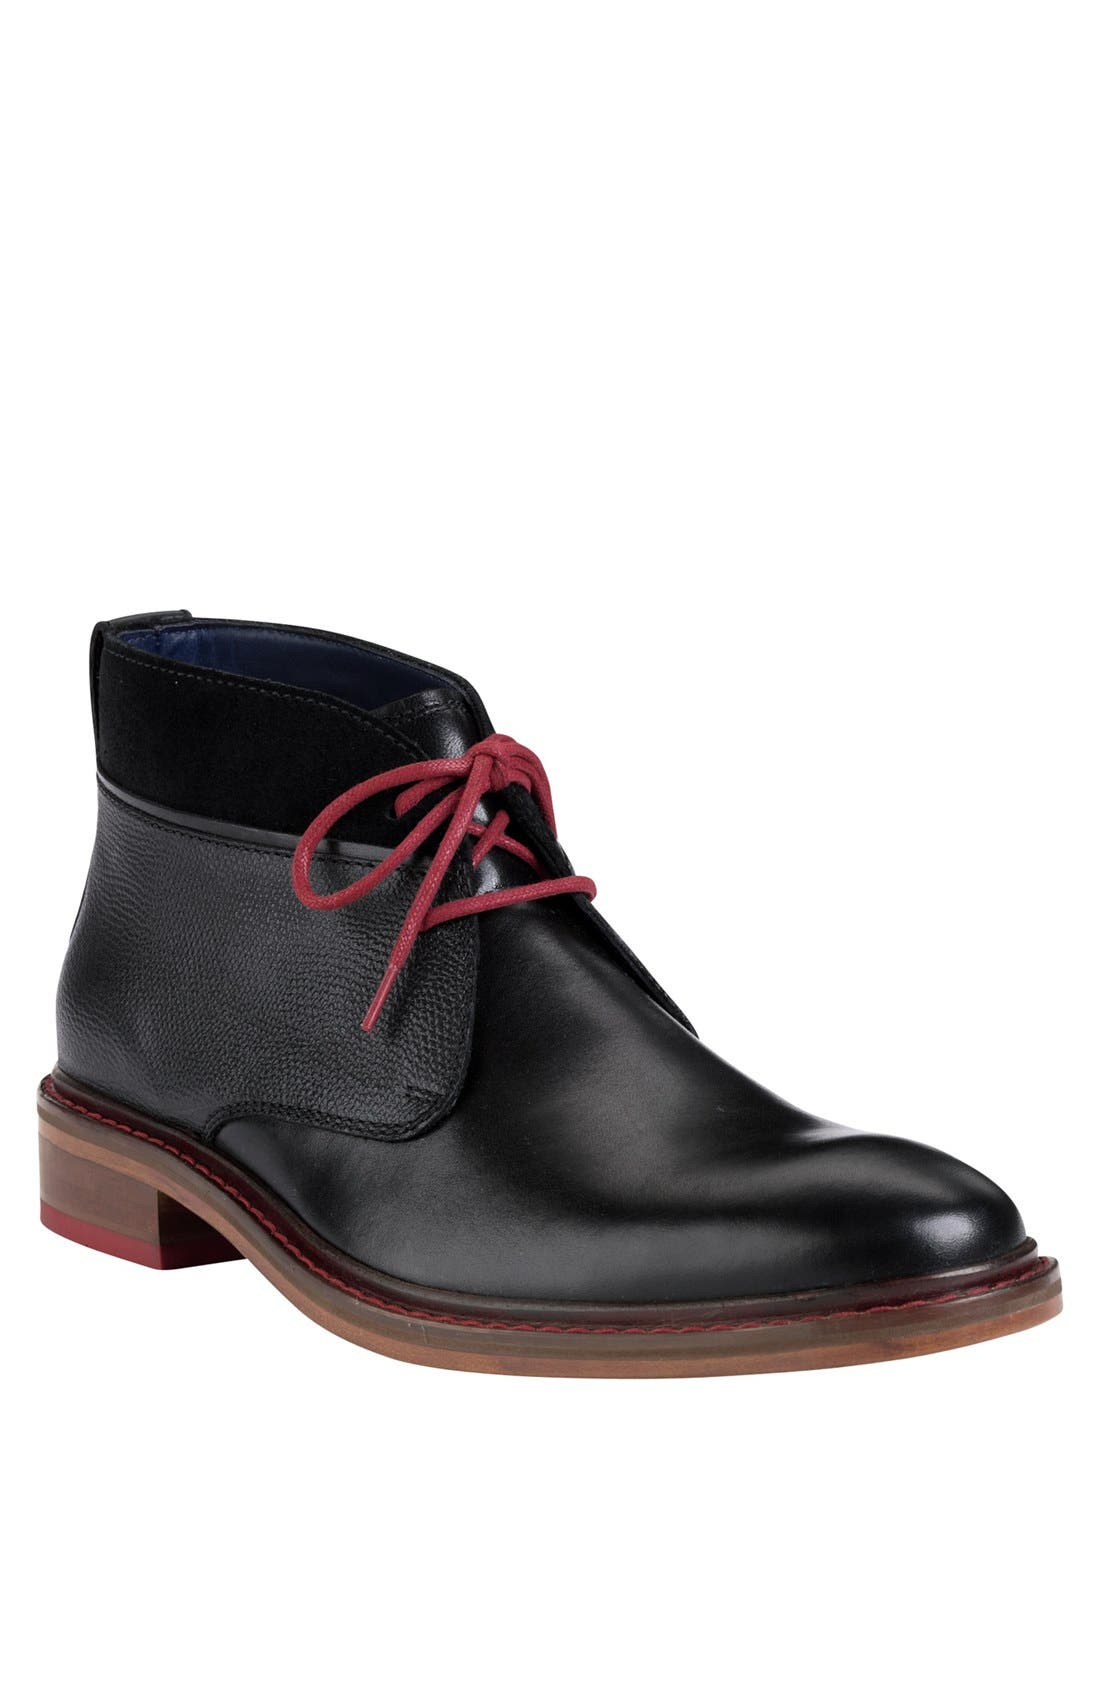 Main Image - Cole Haan 'Colton' Chukka Boot (Men)